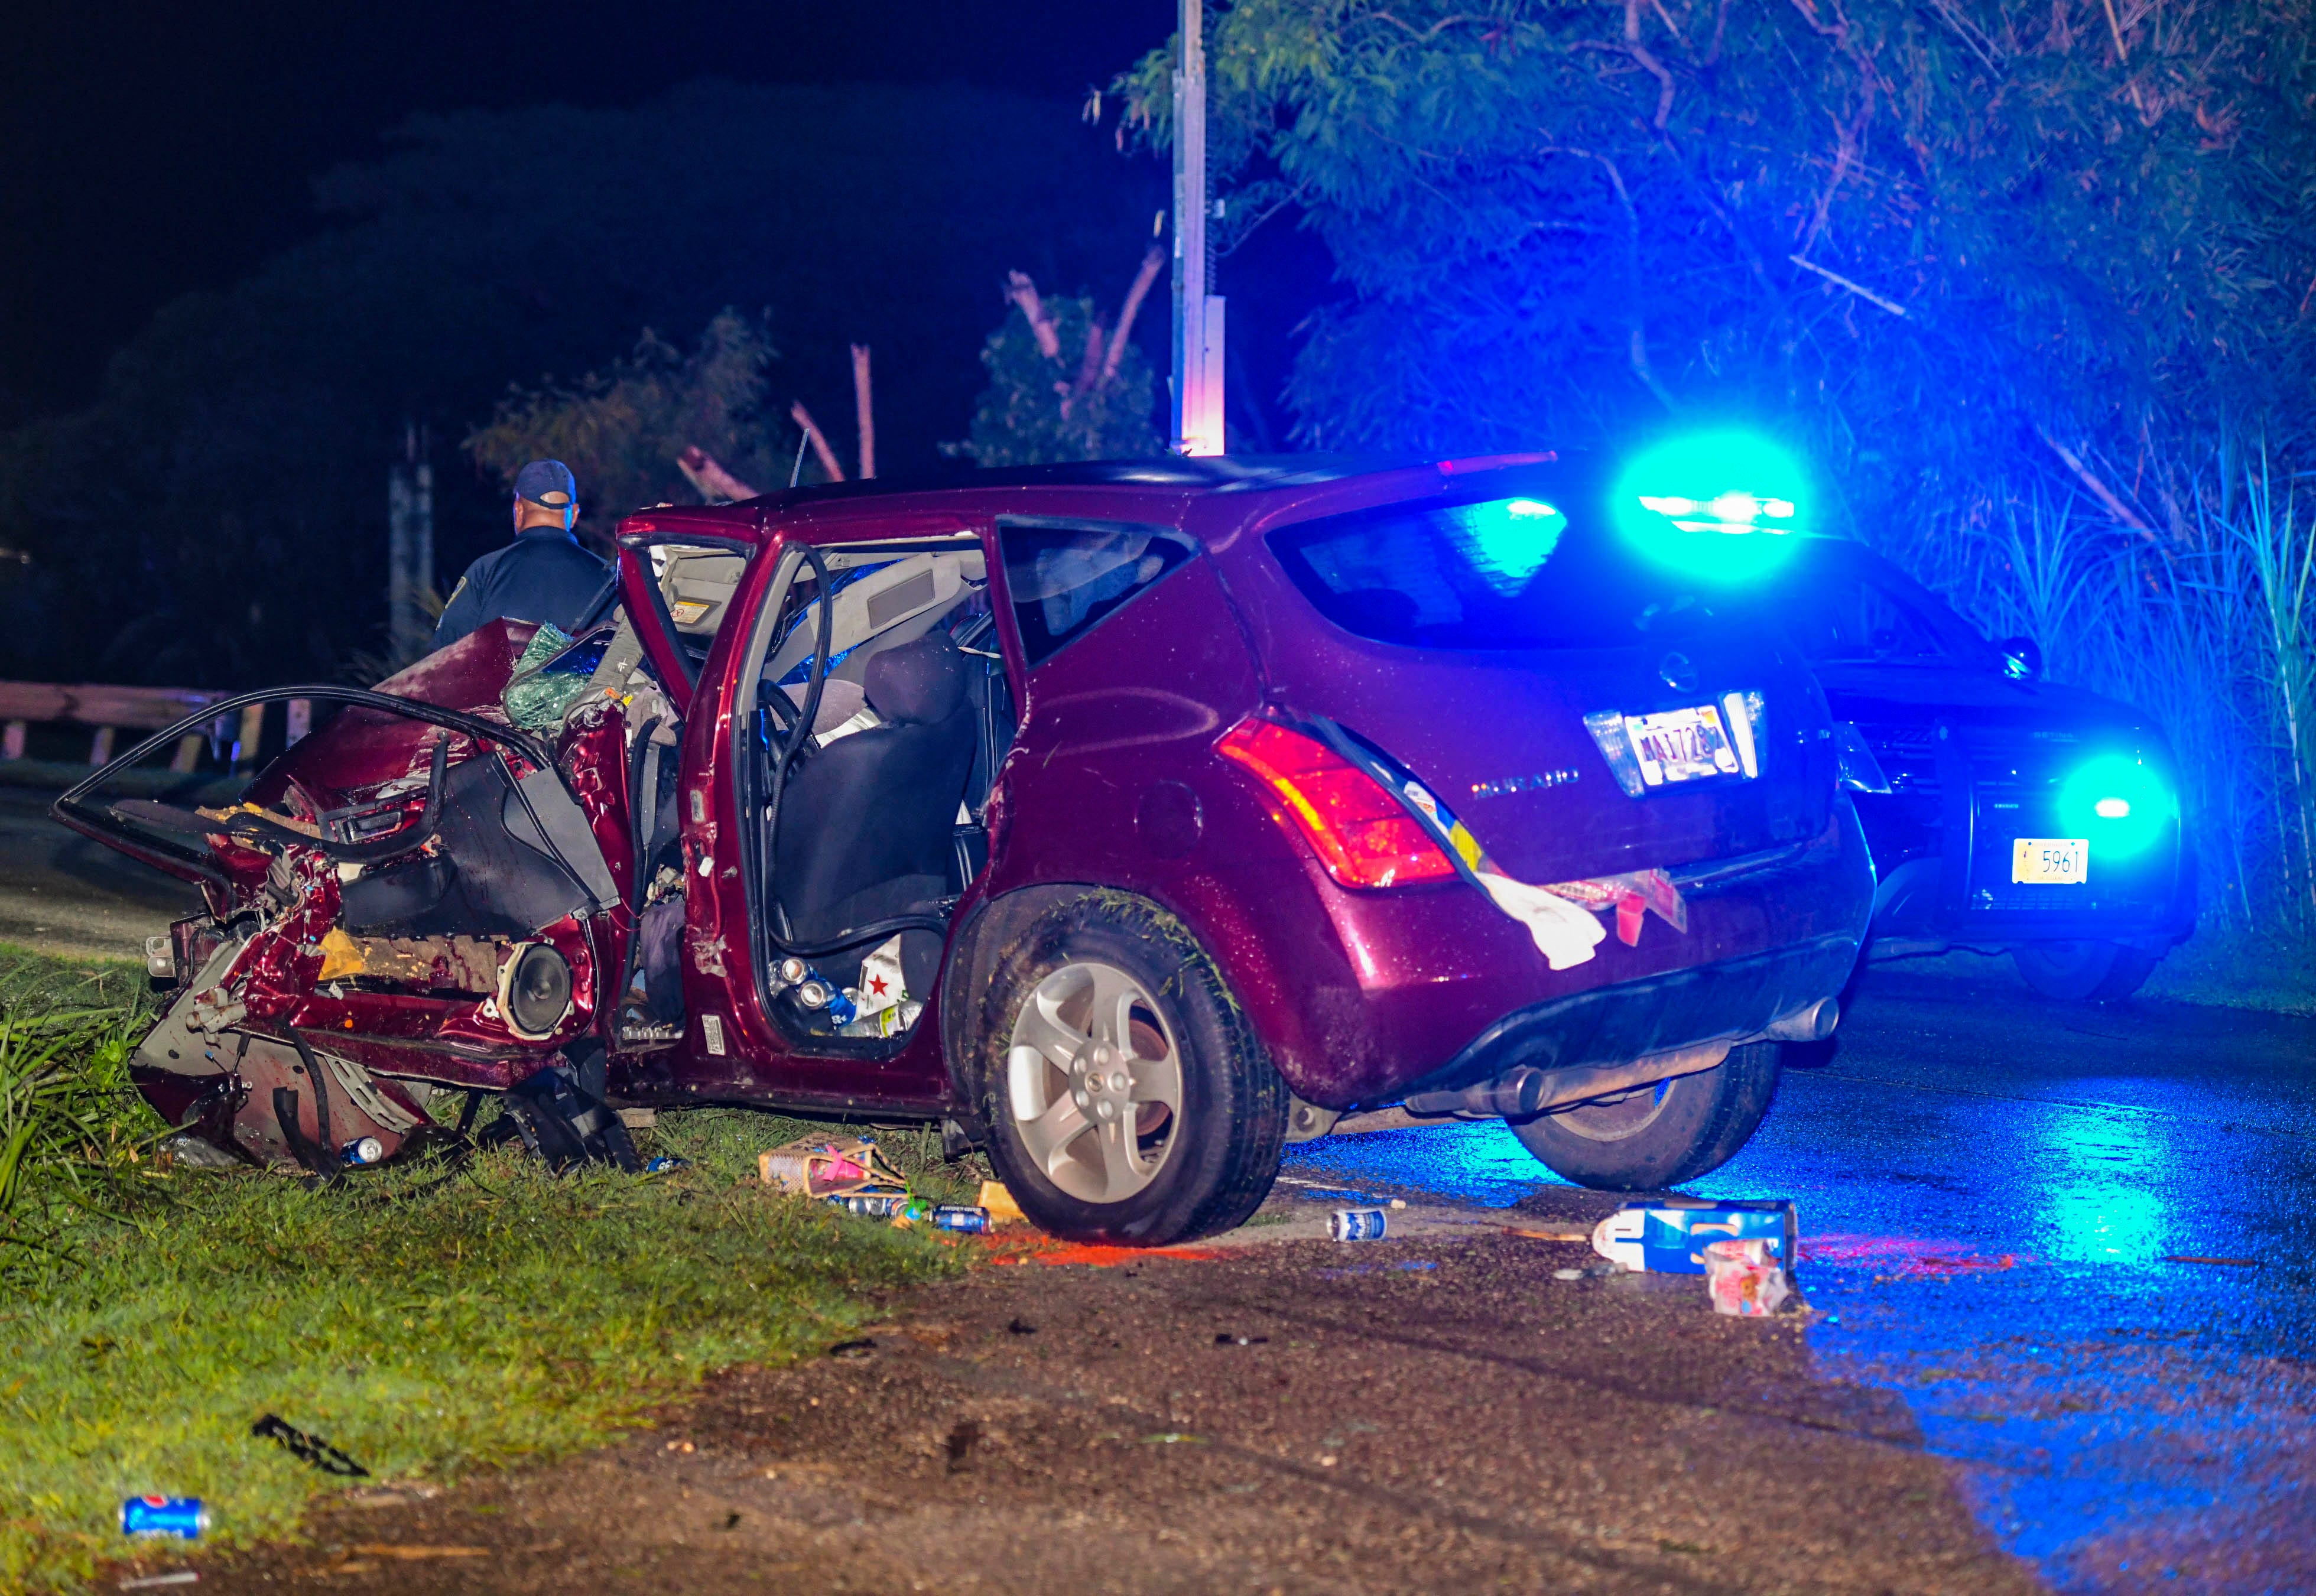 Highway Patrol Division officers with the Guam Police Department conduct an investigation of a fatal crash involving a Nissan Murano colliding into a concrete utility pole along Route 15, near the Hello Market in Yigo, on the evening on Sunday, July 26, 2020. Firefighters with the Guam Fire Department used the Jaws of Life to extricate the male operator and sole occupant of the vehicle, who was pulseless and breathless, at the scene according to GFD spokesman Kevin Reilly. CPR was performed on the driver as he was transported to the Guam Regional Medical City, Reilly added.